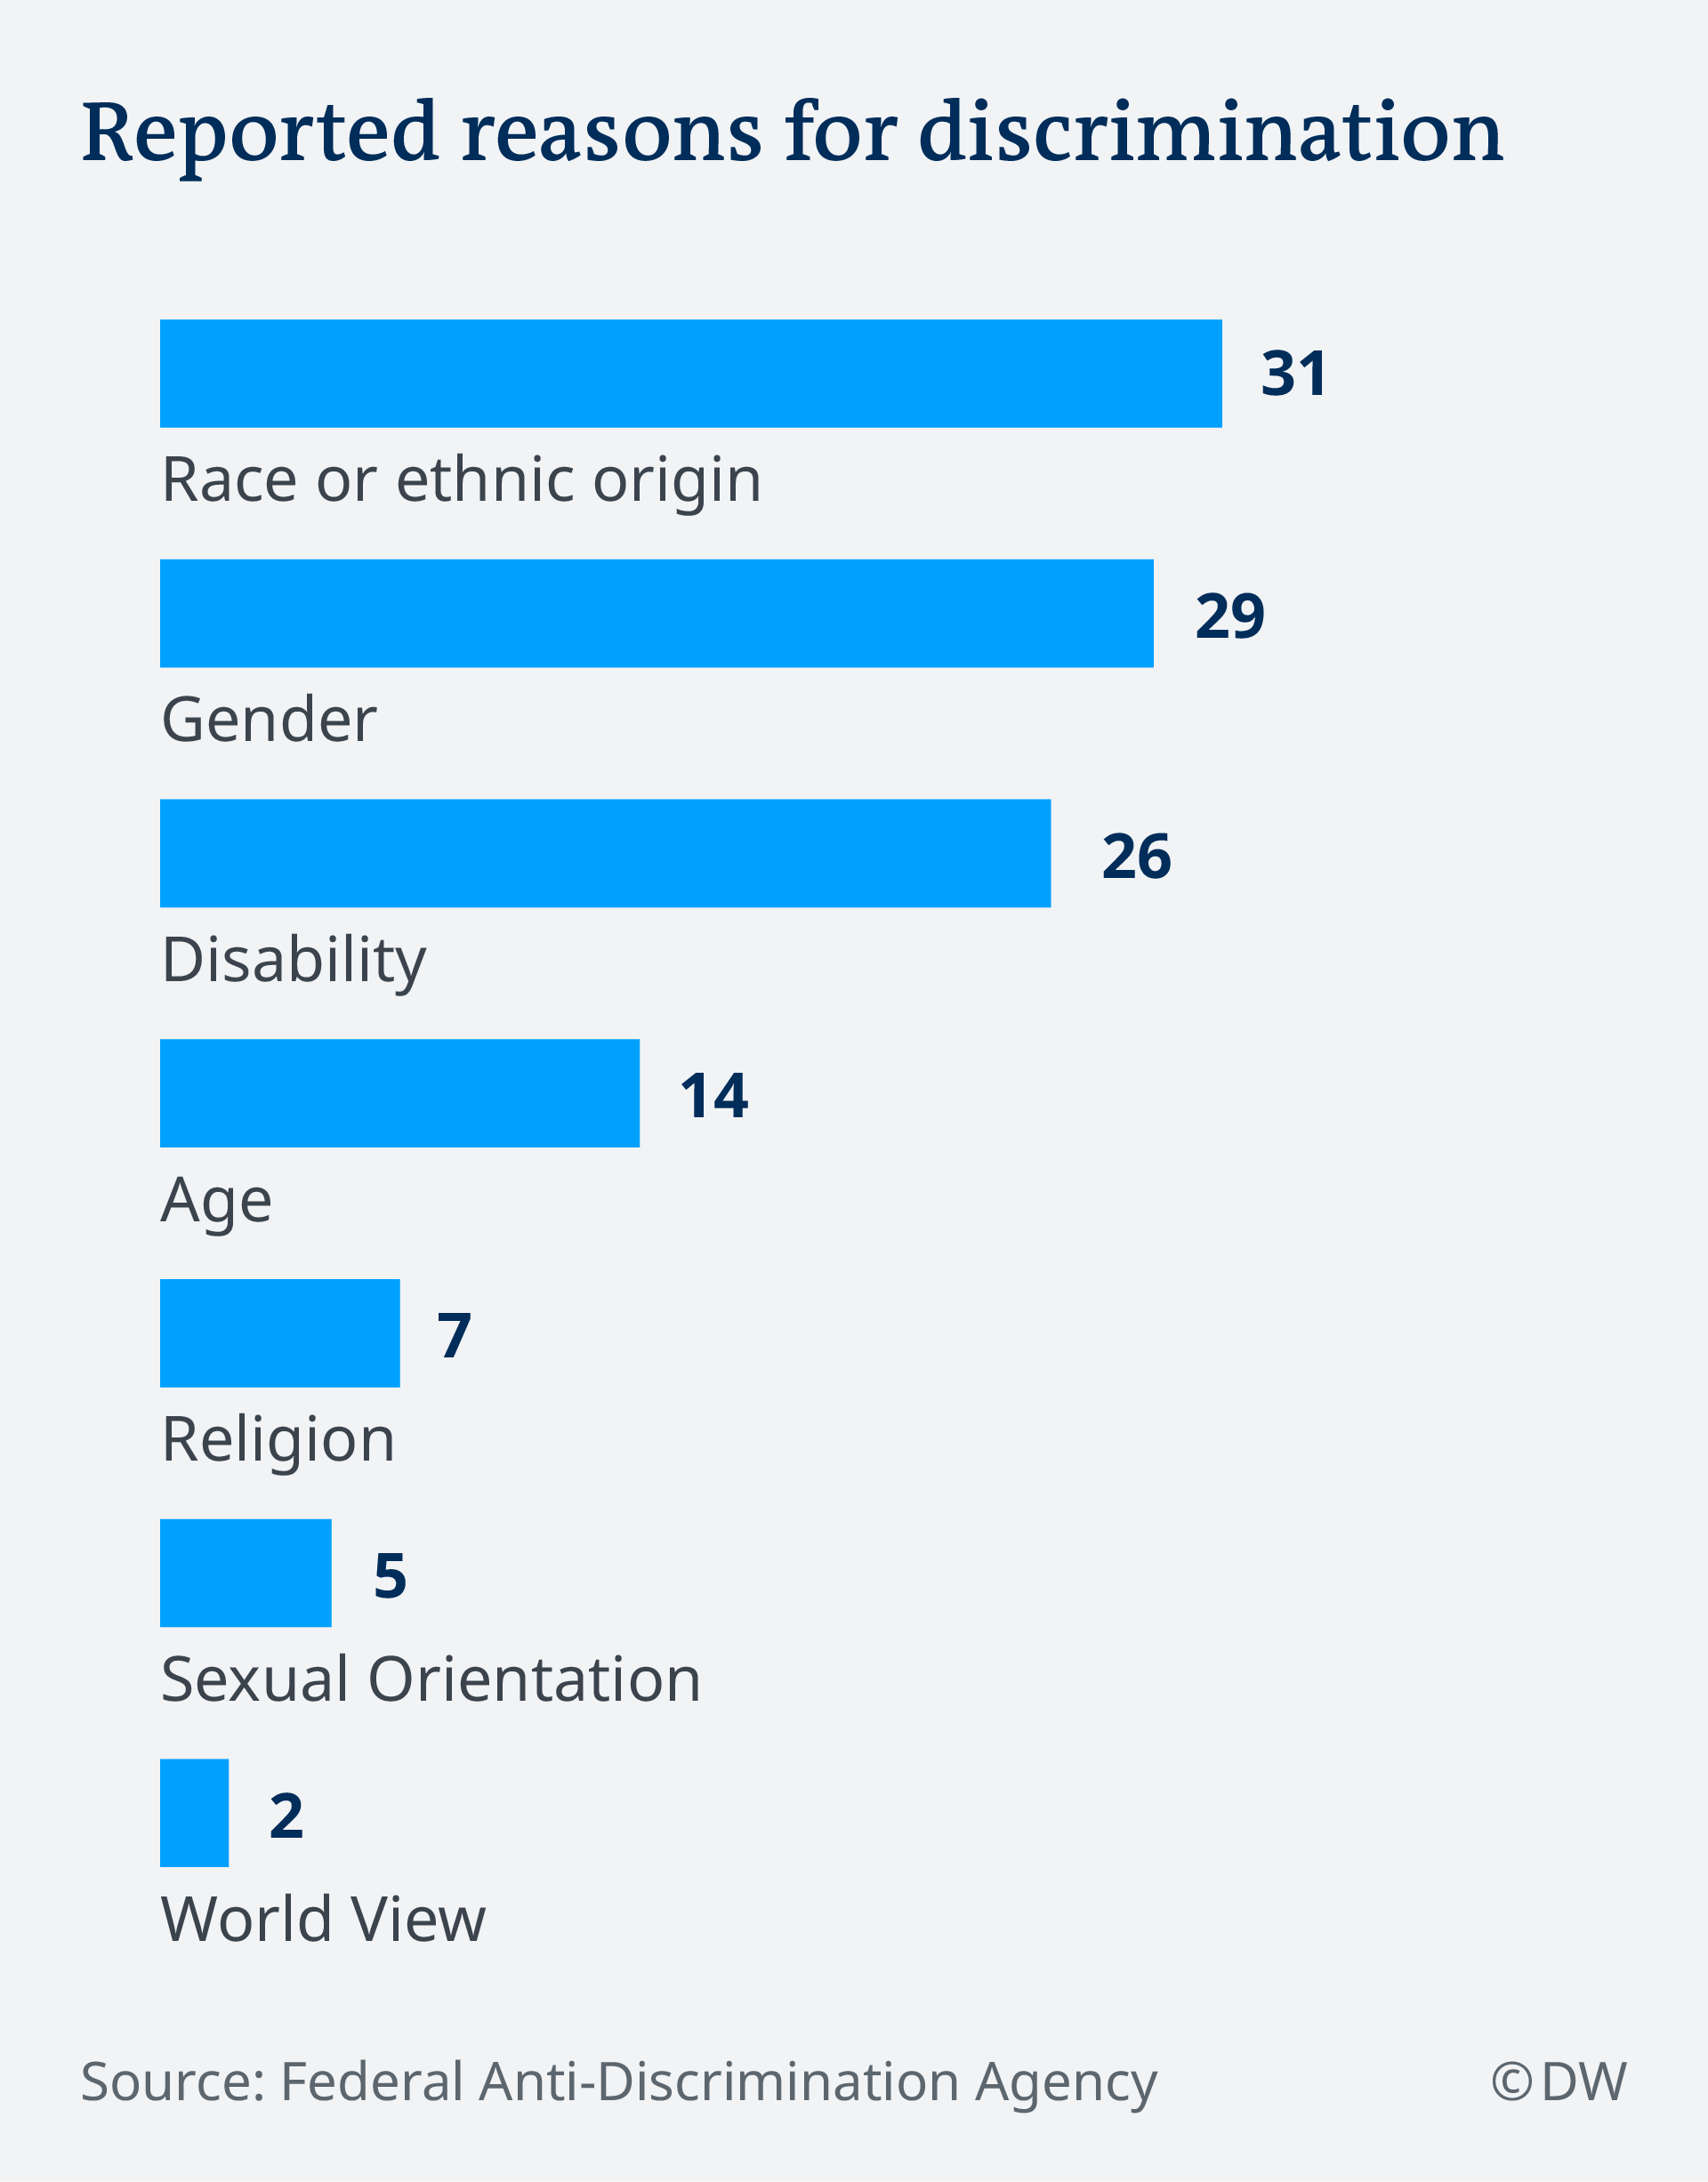 Most reported reasons for discriminatio in 2018